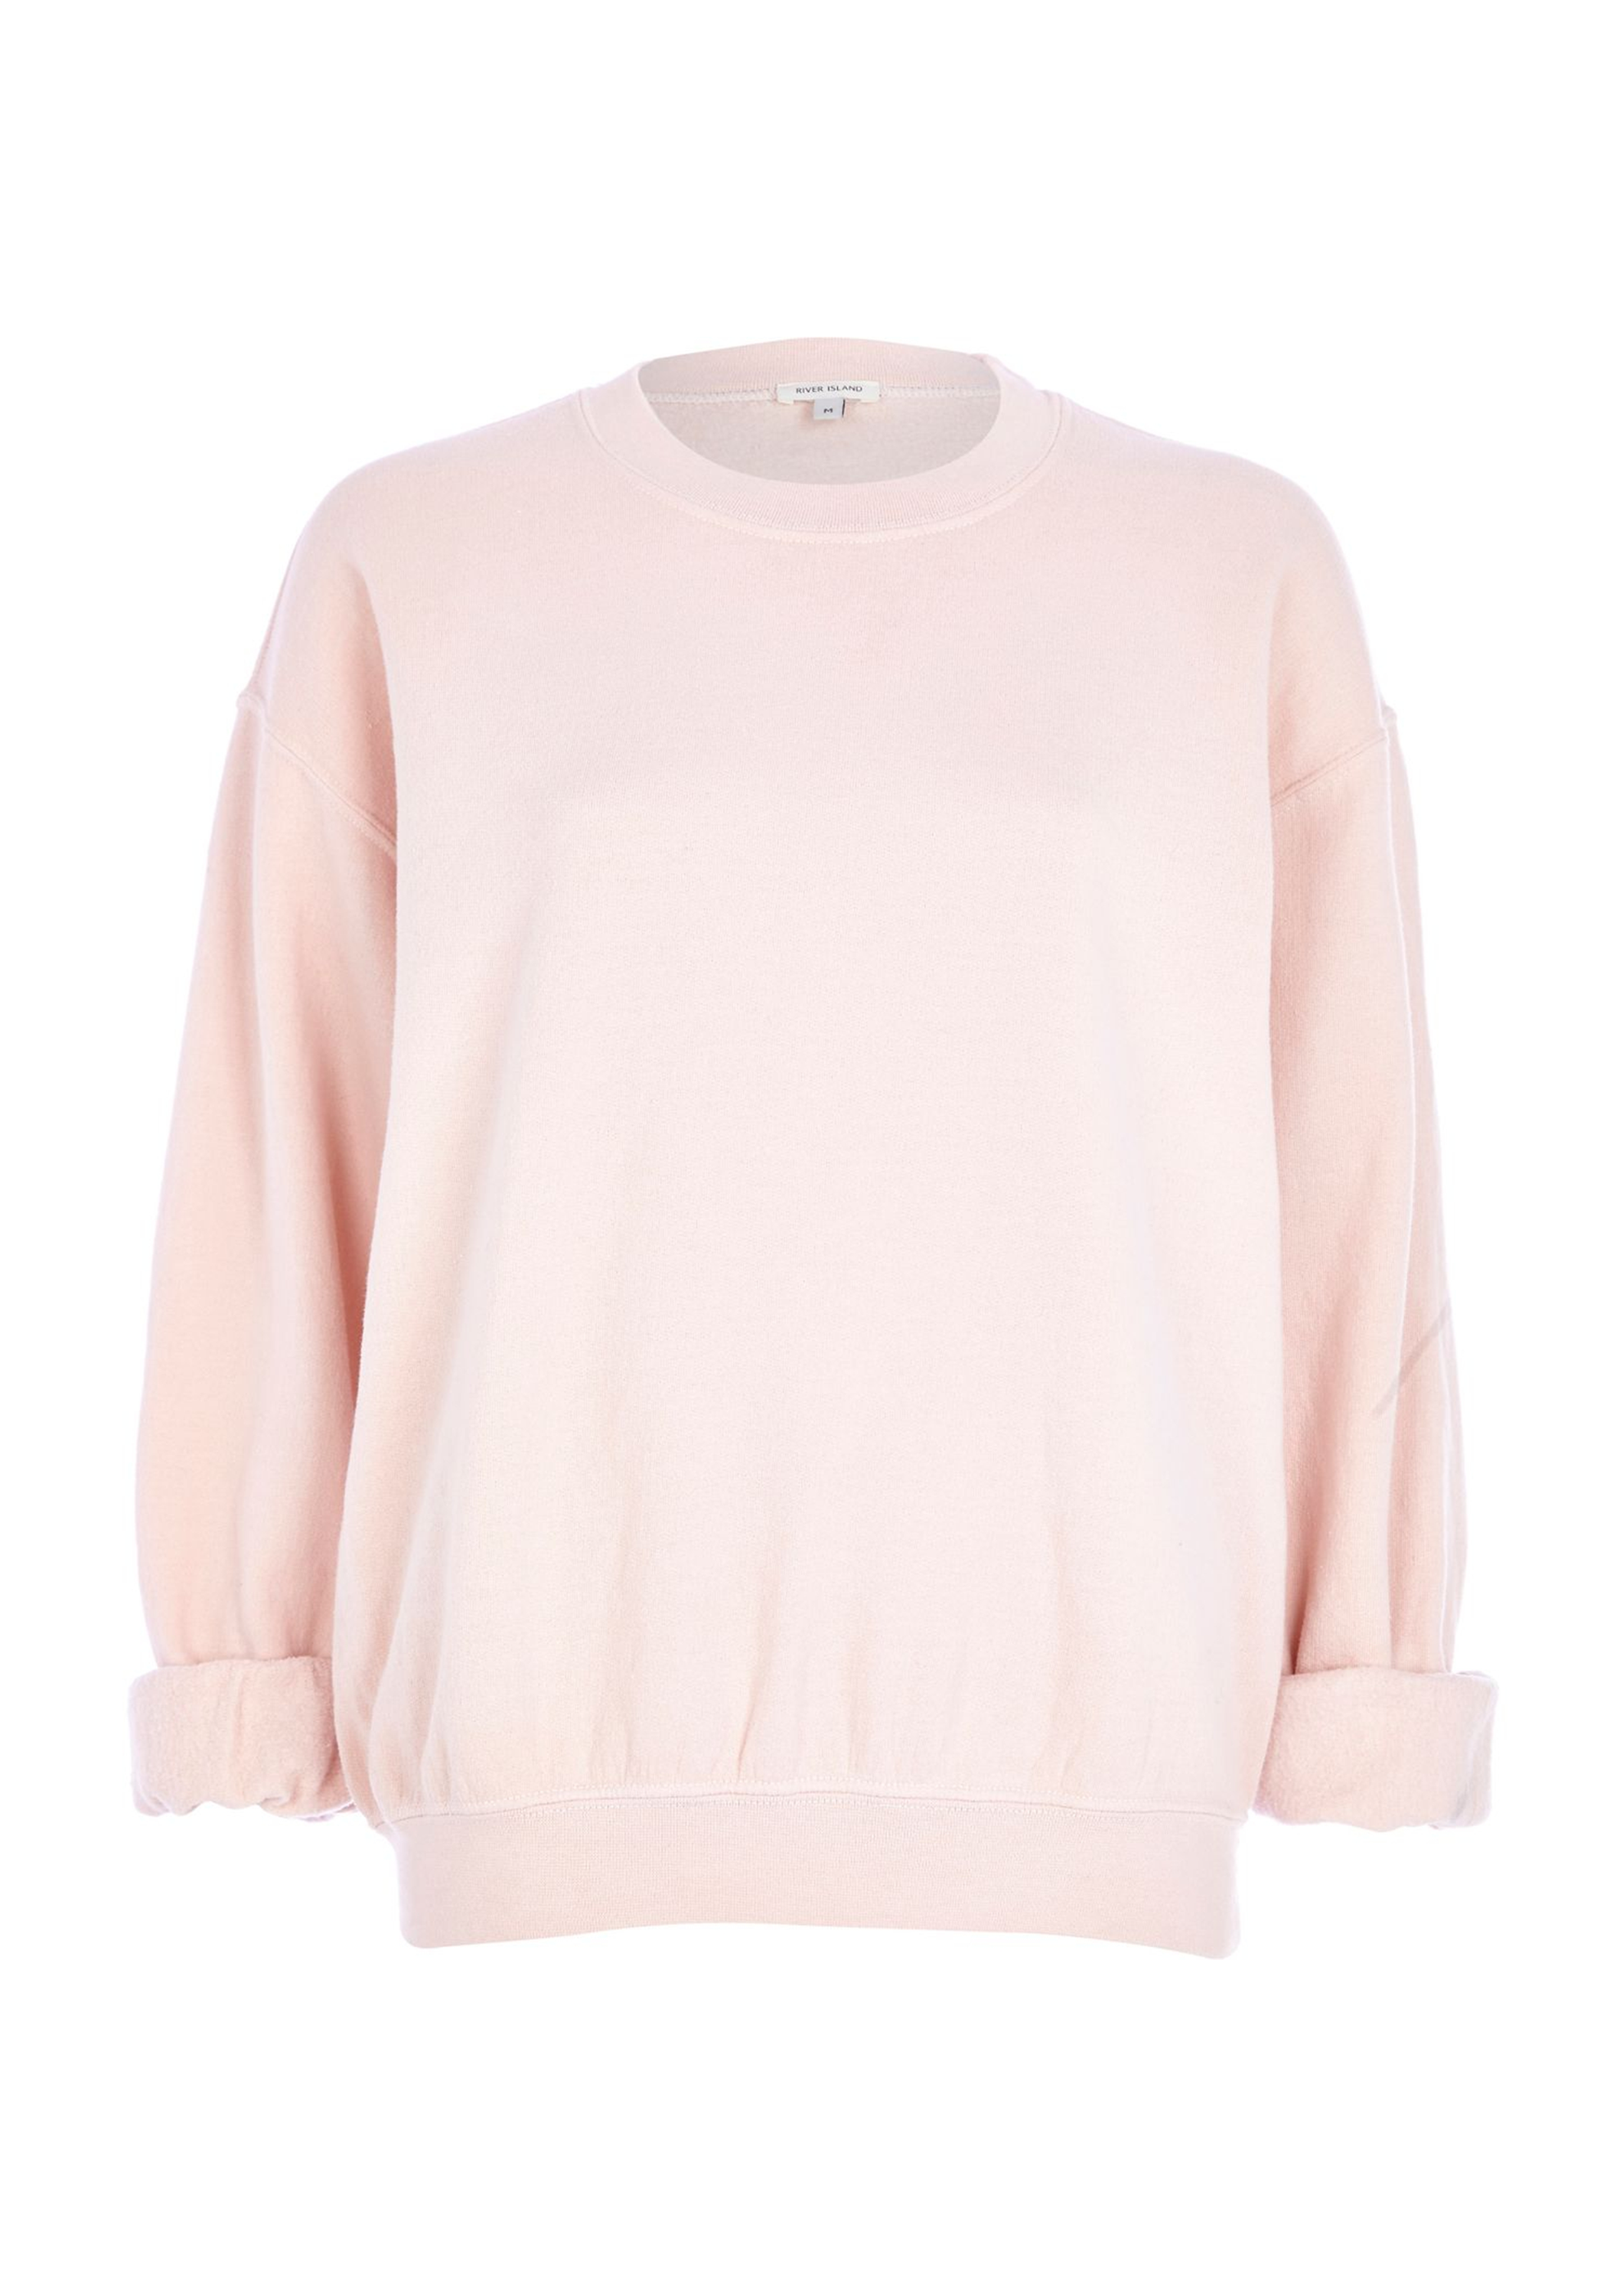 river-island-pink-light-pink-brushed-oversized-sweatshirt-product-1-19065258-1-684640461-normal.jpg